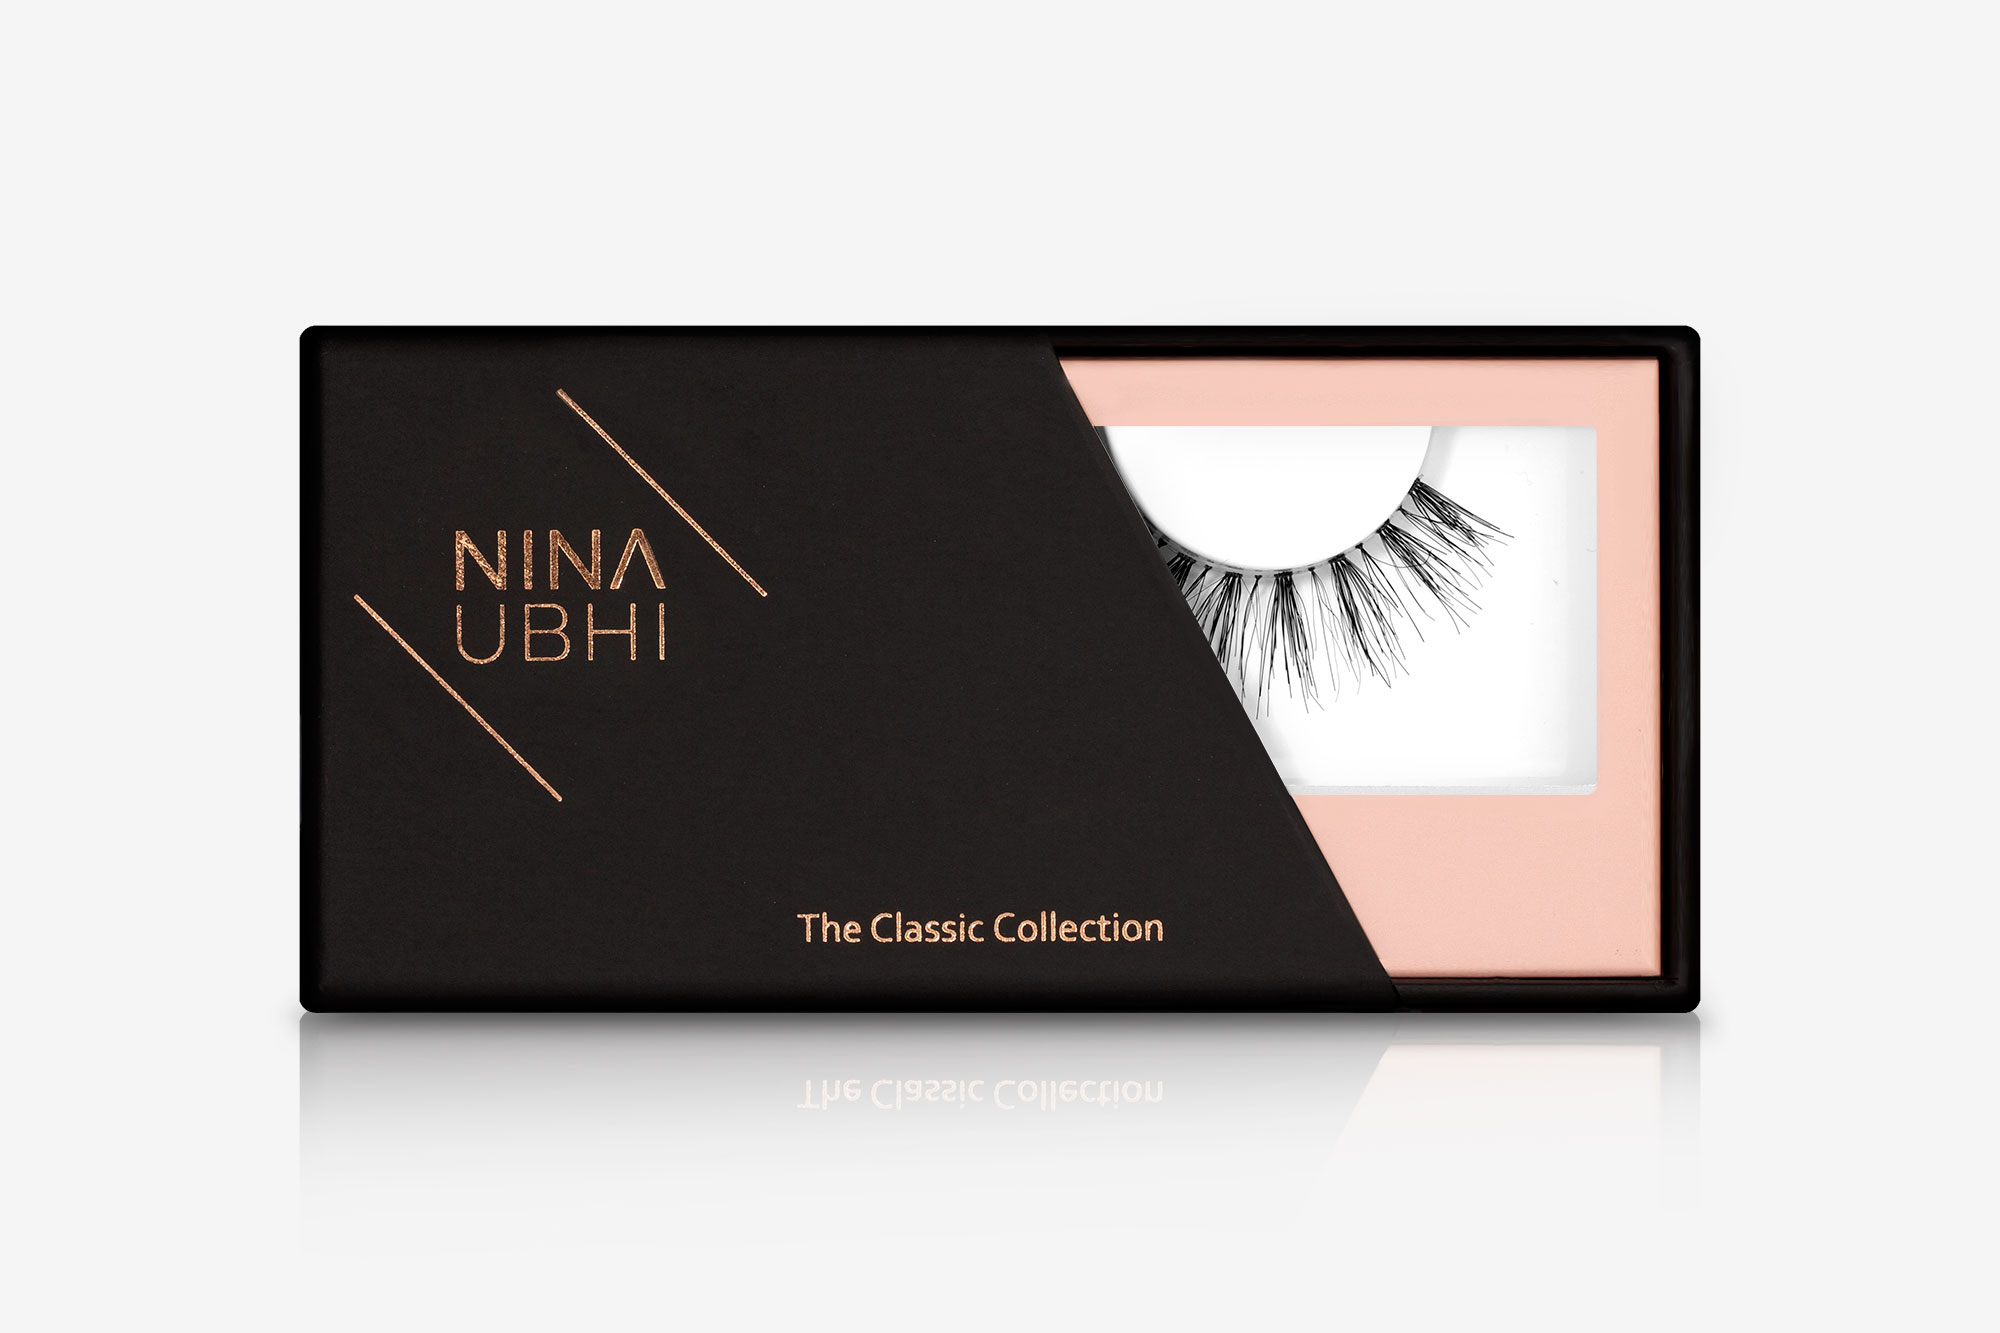 Ivy False Eyelashes, false eyelashes in a Nina Ubhi branded box